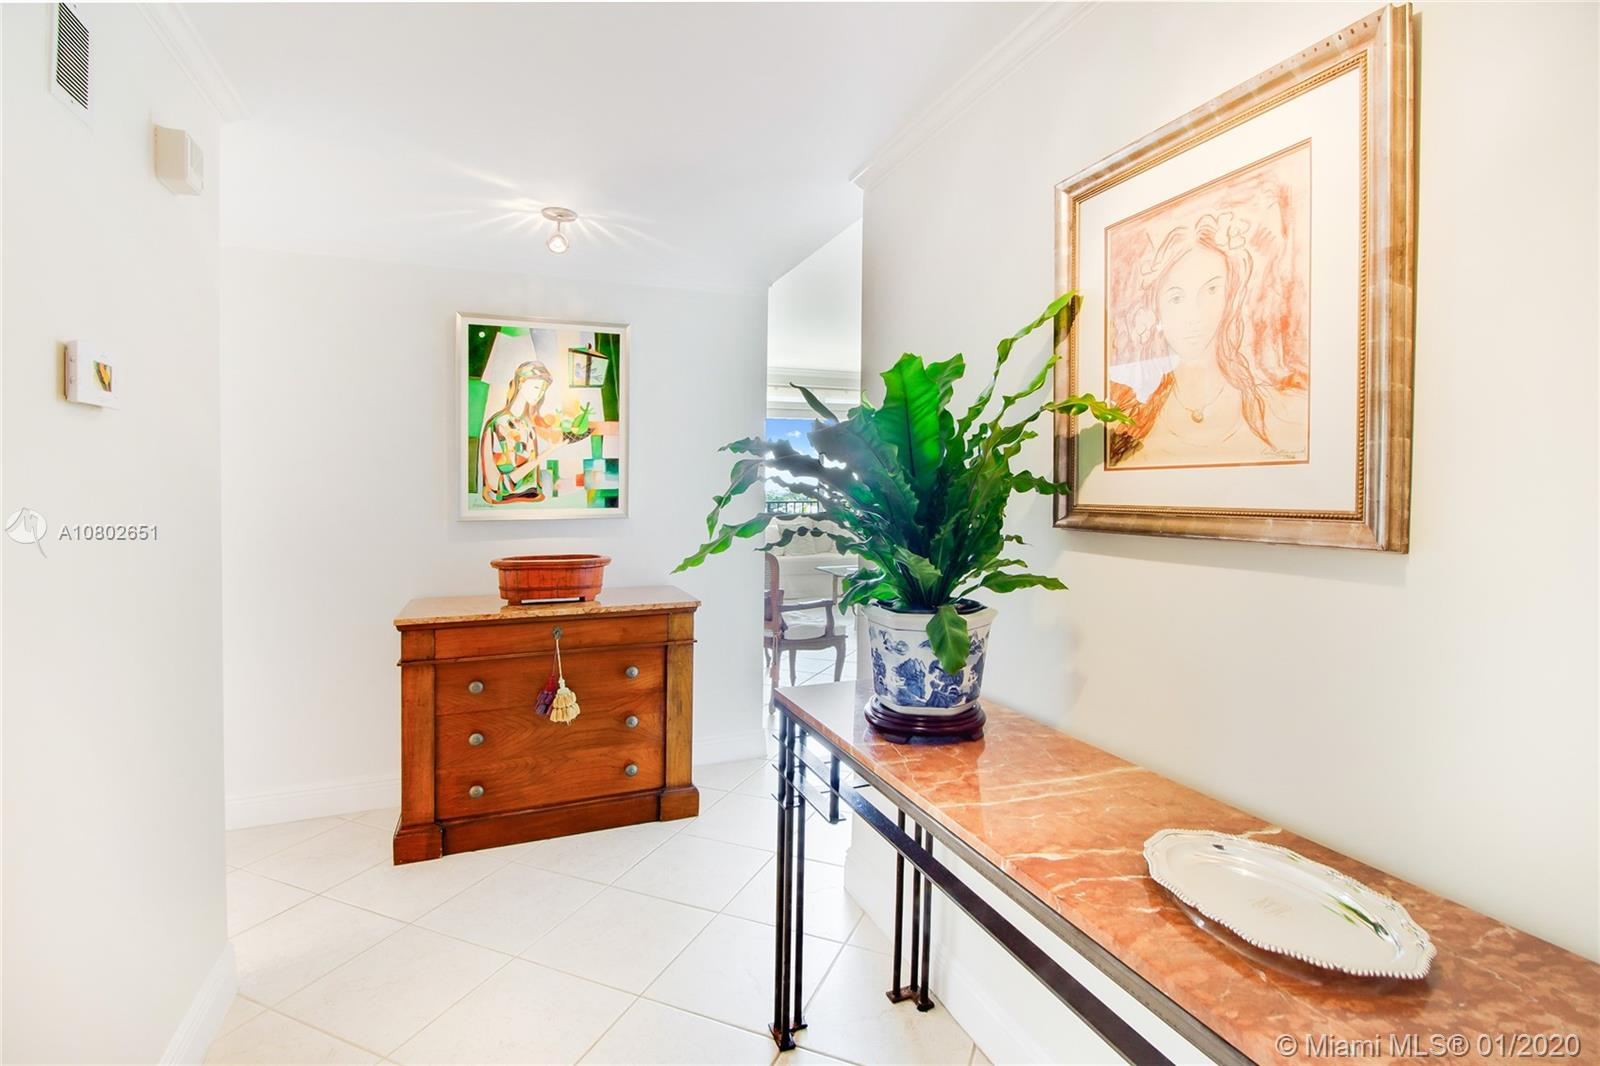 South Side Unit With Panoramic Ocean, Island, Bay, Pool, Fountain & Sunset Views!  Immaculate interior features, tile floors throughout, an open kitchen with white cabinetry, stainless steel appliances and white marble counter tops/backsplash. Large Terrace! Plenty Of Light & Sunshine!